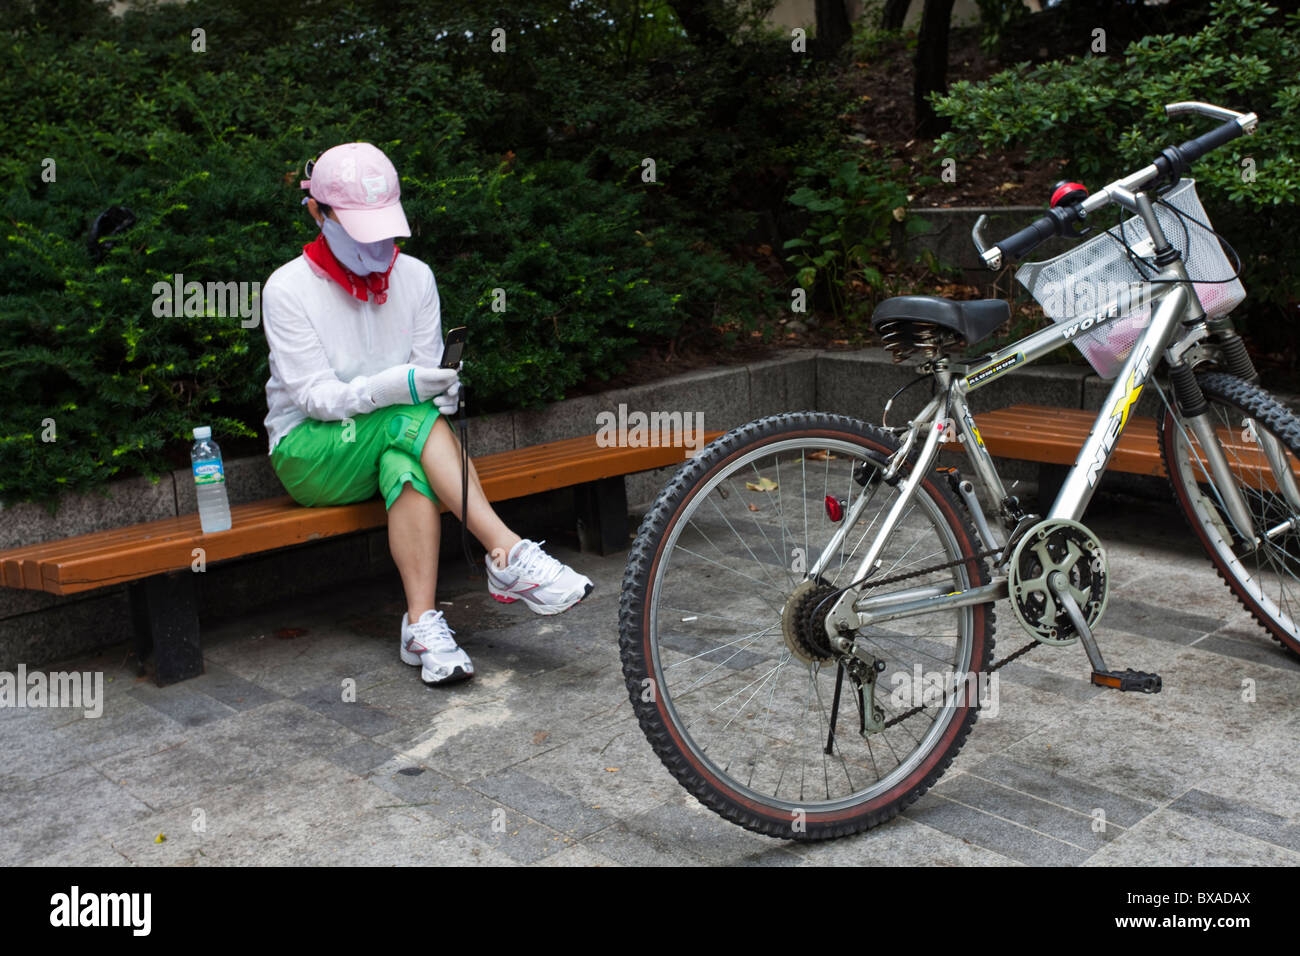 Cyclist pauses to read a phone message, Seoul, South Korea - Stock Image